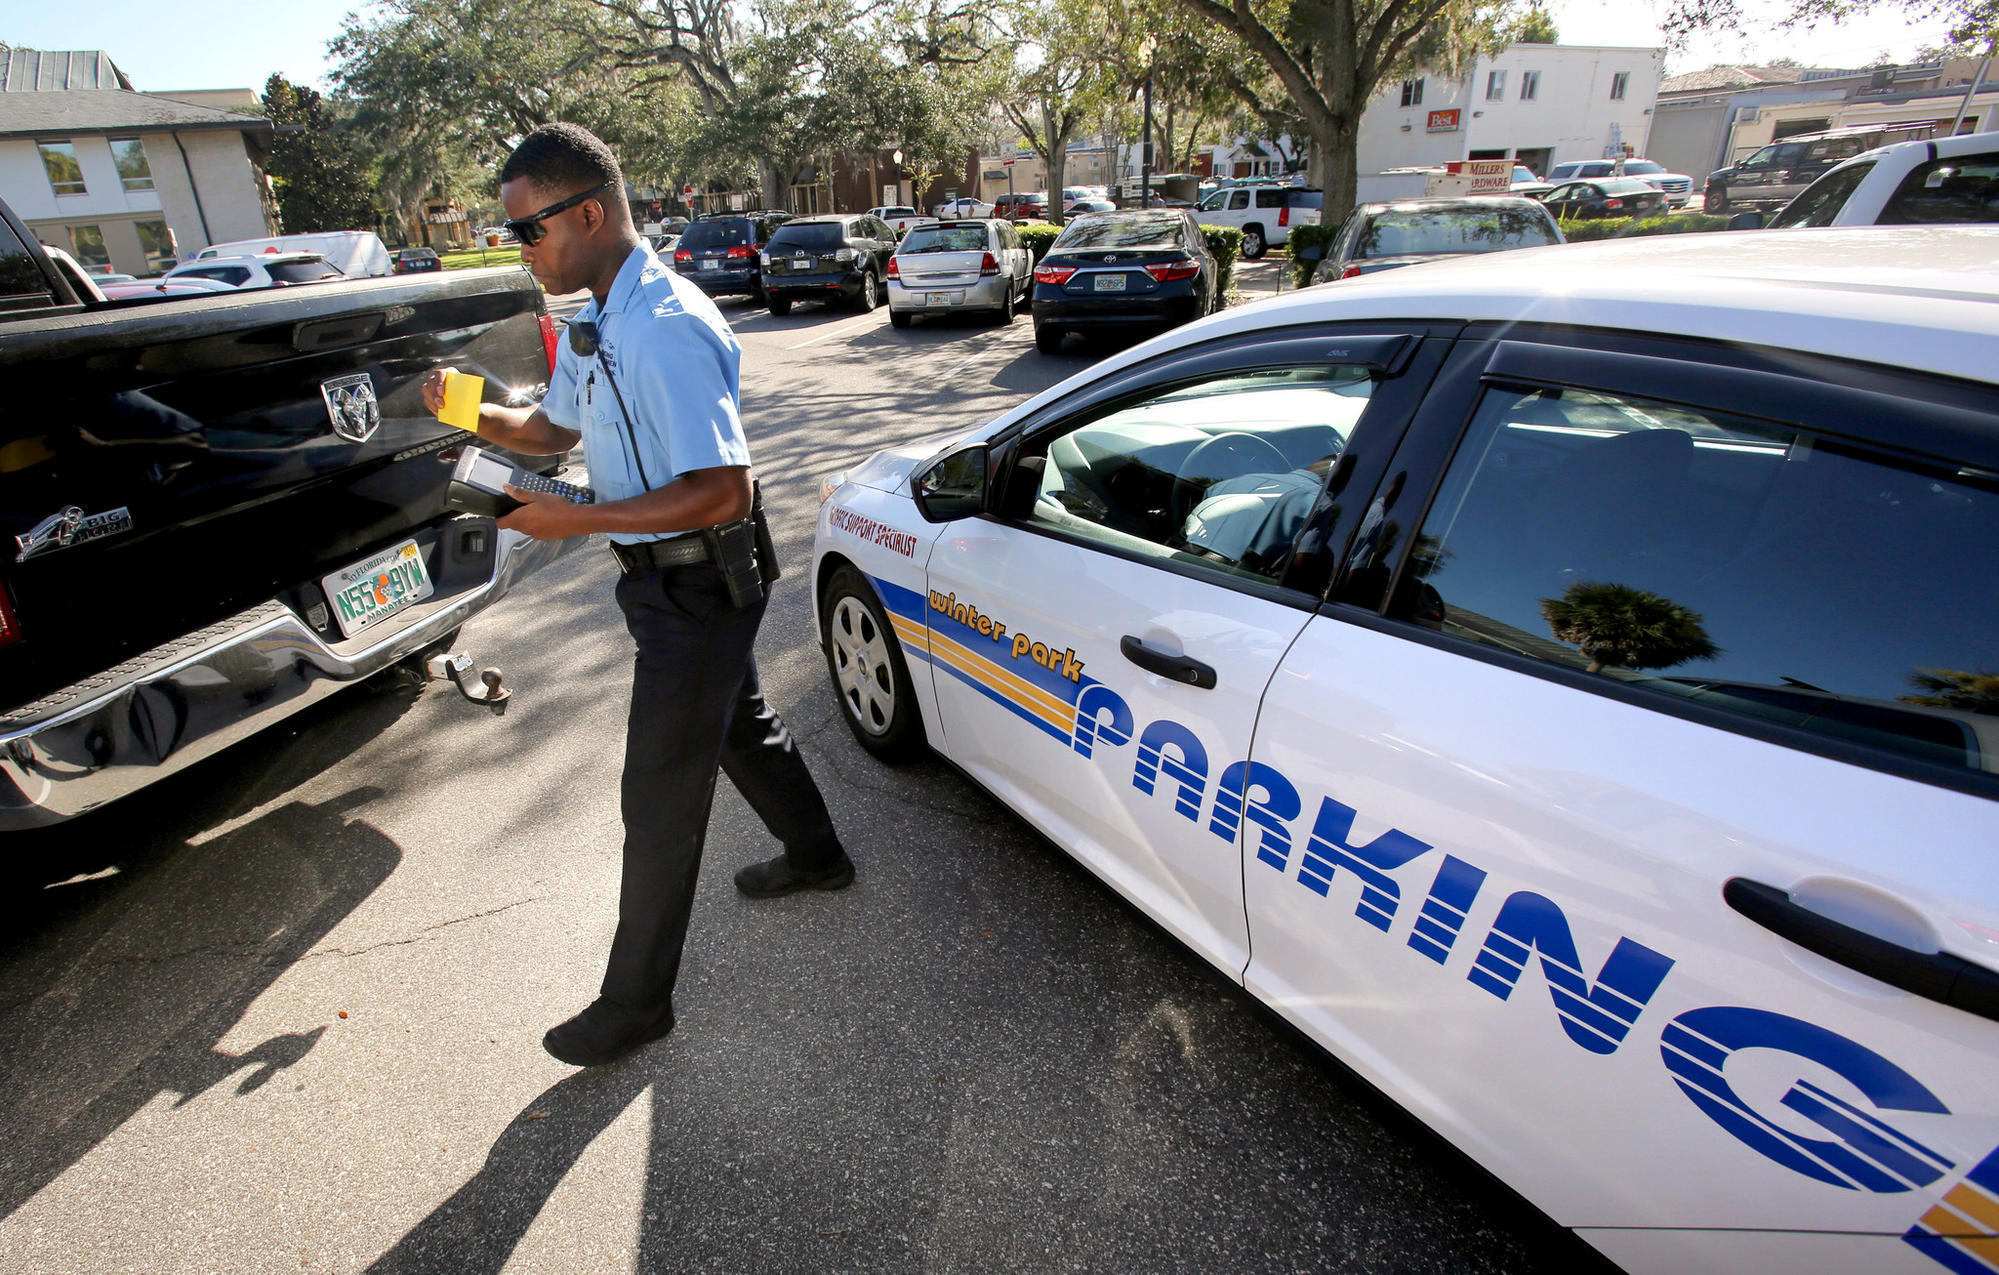 Park Avenue parking crunch comes in part from employees, report says